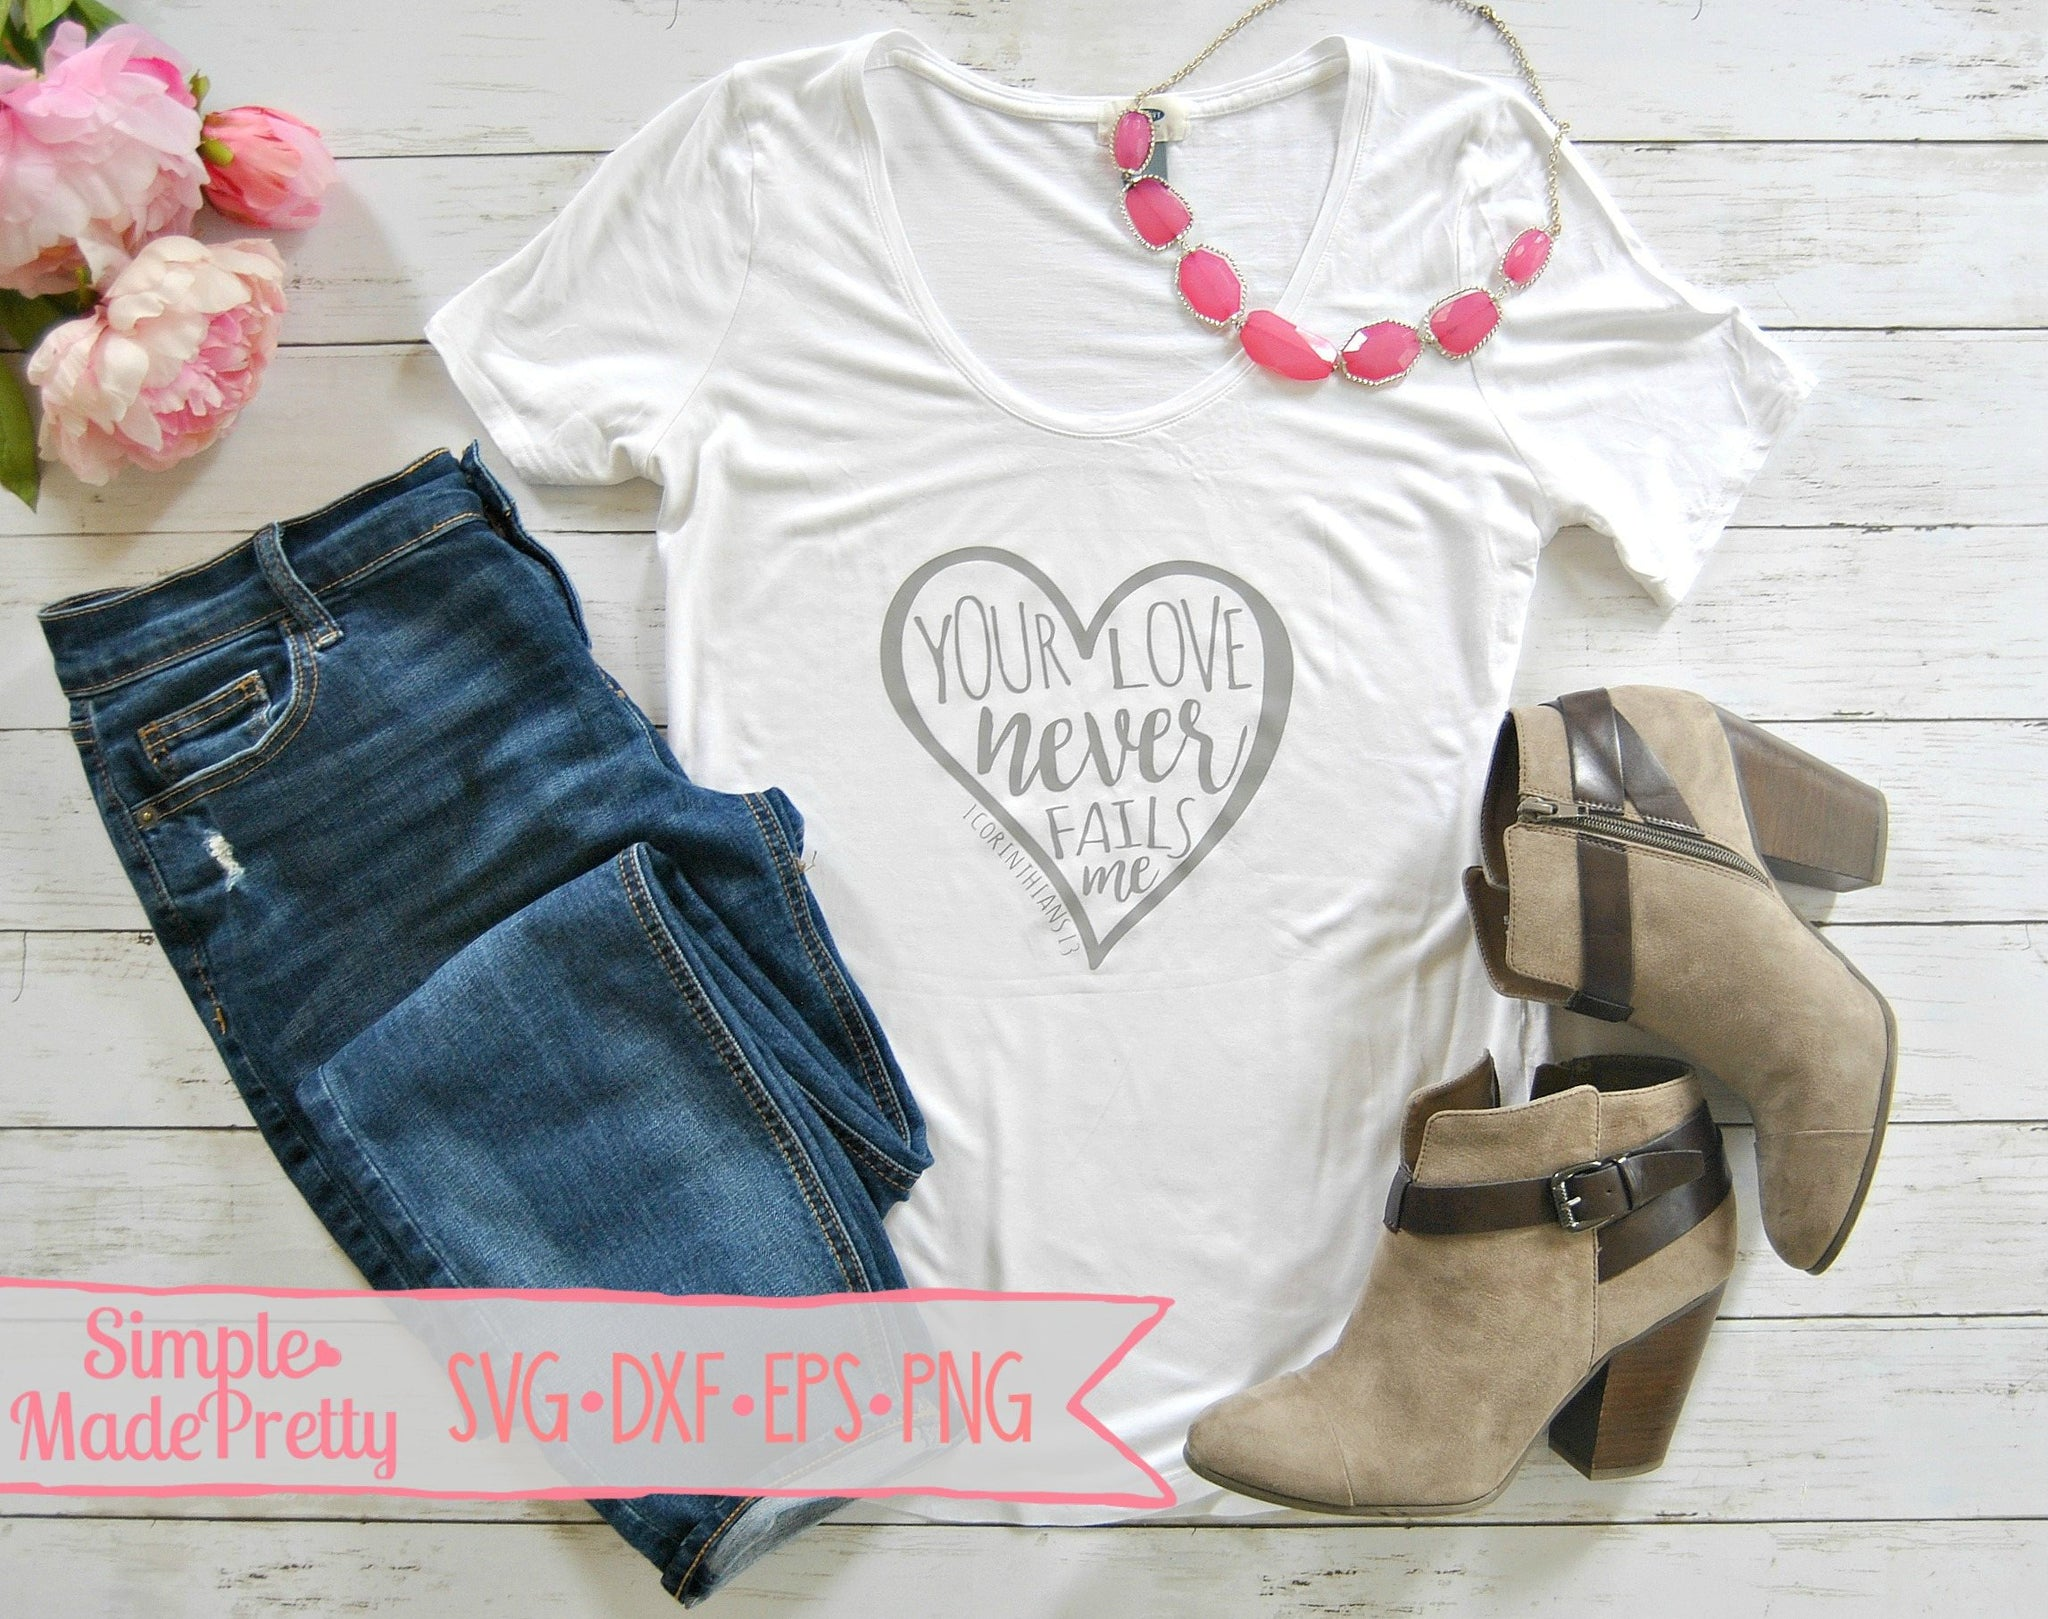 Your Love Never Fails Me Svg Dxf Eps Png Cut File Cricut Sil Simple Made Pretty